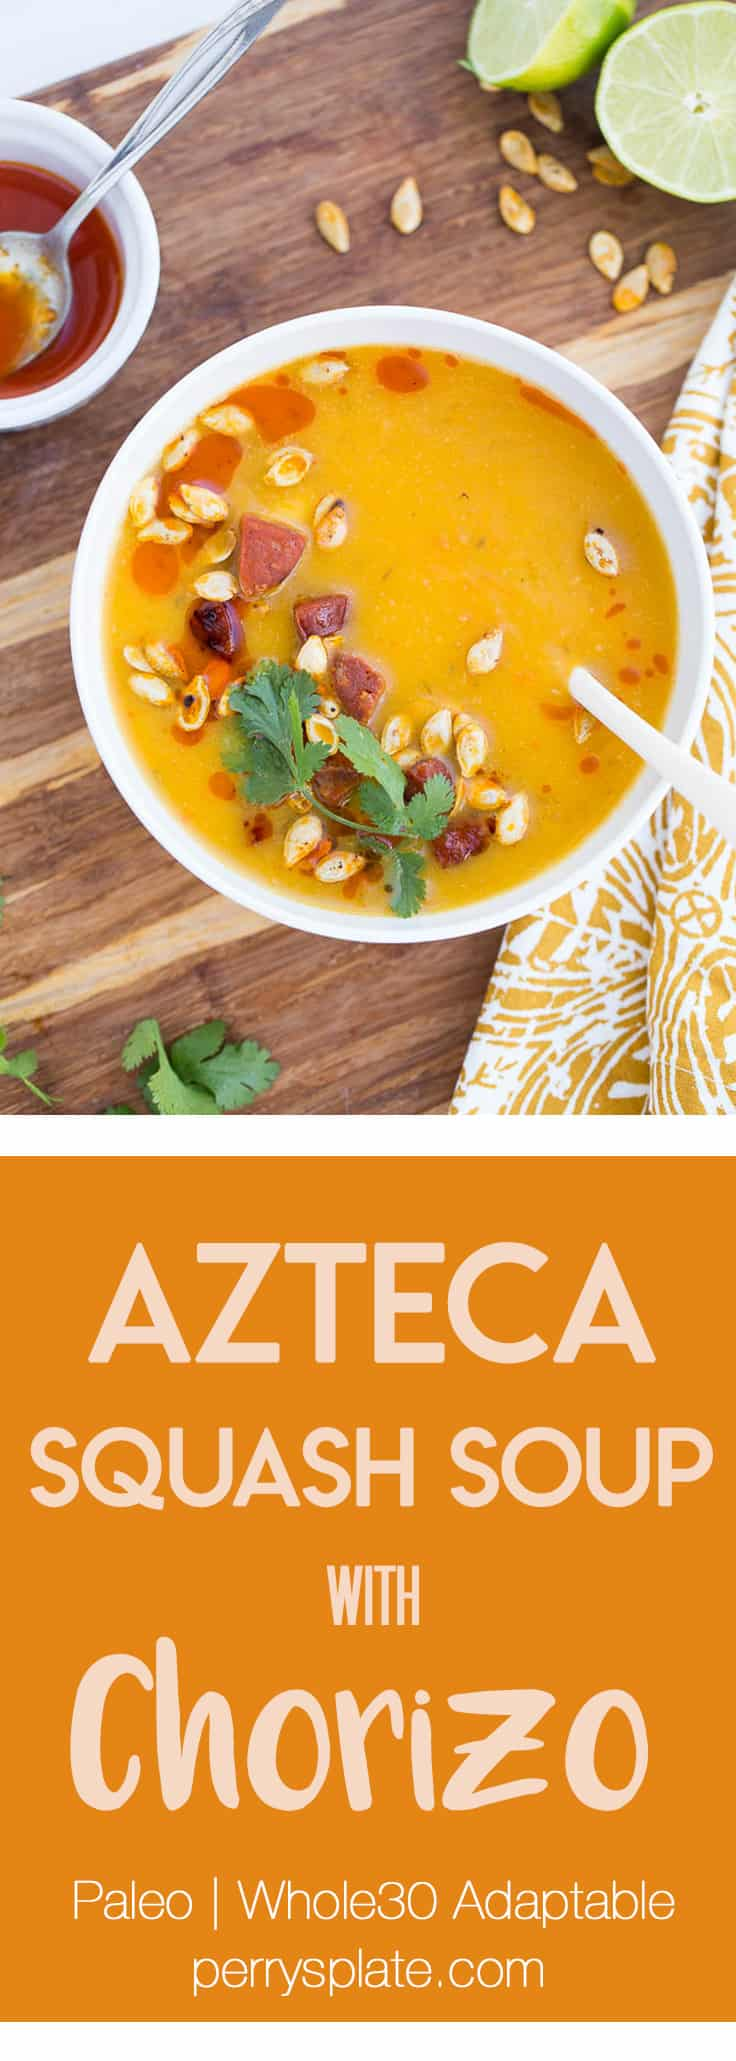 Azteca Squash Soup with Chorizo | paleo recipes | Whole30 recipes | soup recipes | gluten-free recipes | dairy-free recipes | perrysplate.com